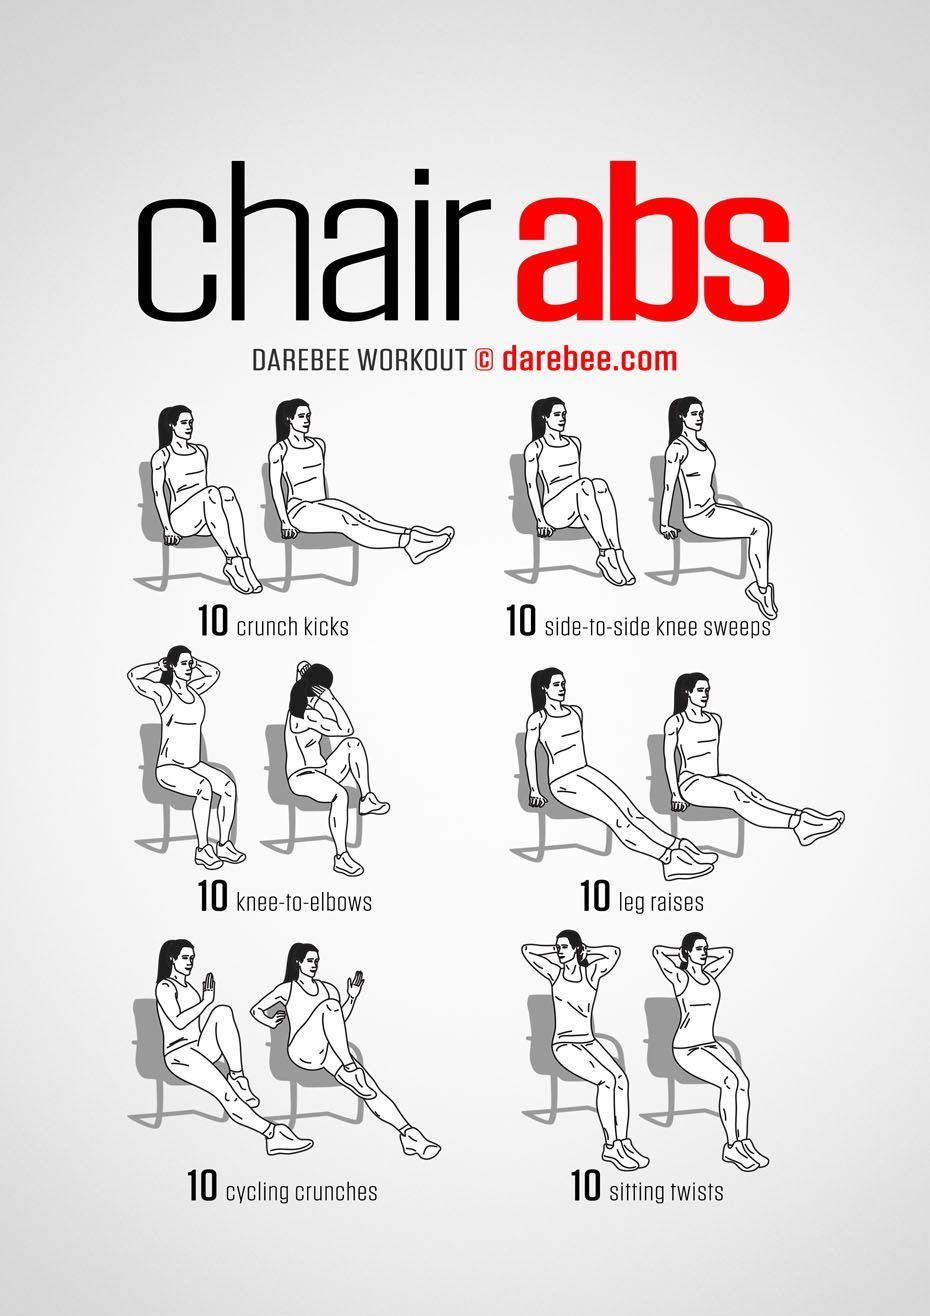 Chair Abs Workout One to One or Group Office Workouts in Logan ... on workout tv, workout office furniture, workout glider, resistance chair, the gymgym chair, elastic bungee chair, workout treadmill, workout mirror, exercise chair, workout sled, pettibon wobble chair, workout chest, workout planner, workout heart, workout worksheet, fitness chair, workout bench, re bungee chair, workout stool, workout tables,